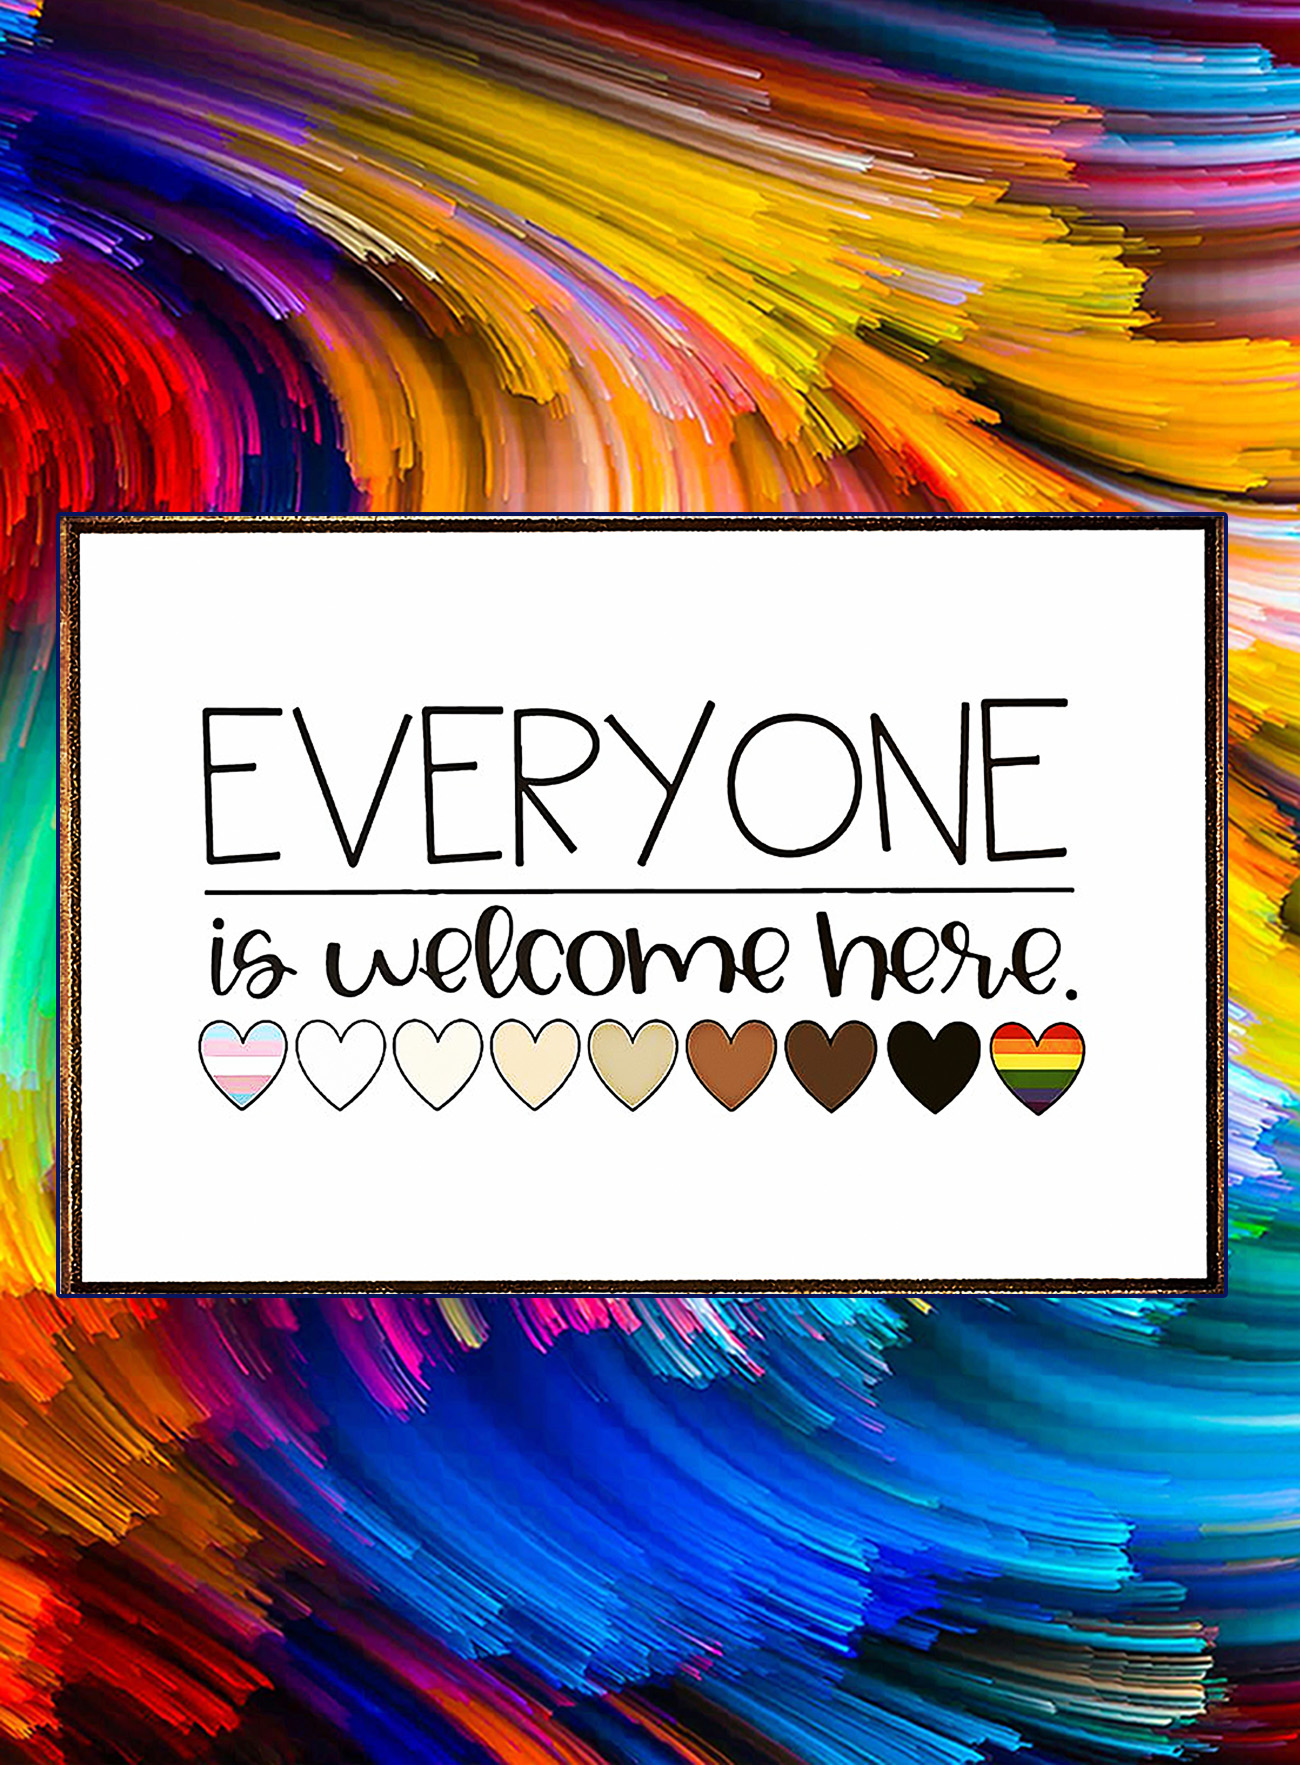 Everyone is welcome here poster - A4